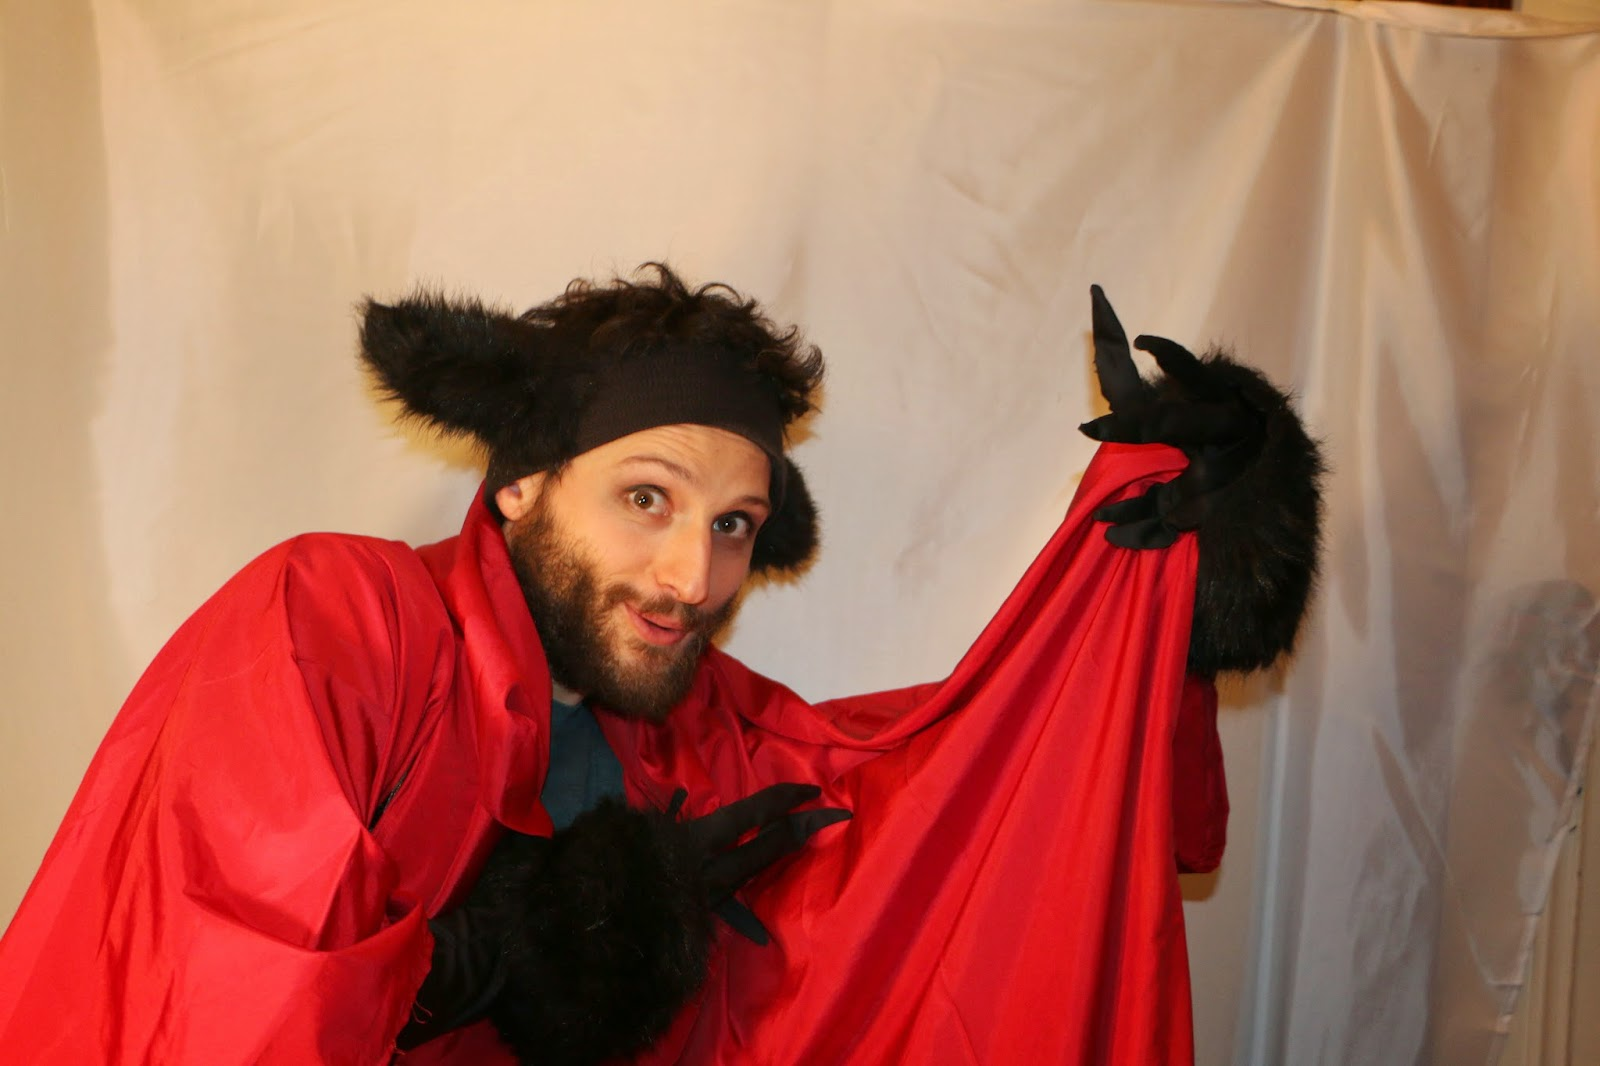 THE CHARMING BIG BAD WOLF-1Q-RED RIDING HOOD 2015--GLEAMS THEATER--IRA SOKOLOVA- PHOTO: SHAHRZAD GHAFFARI WESTMOUNT, QUEBEC, CANADA